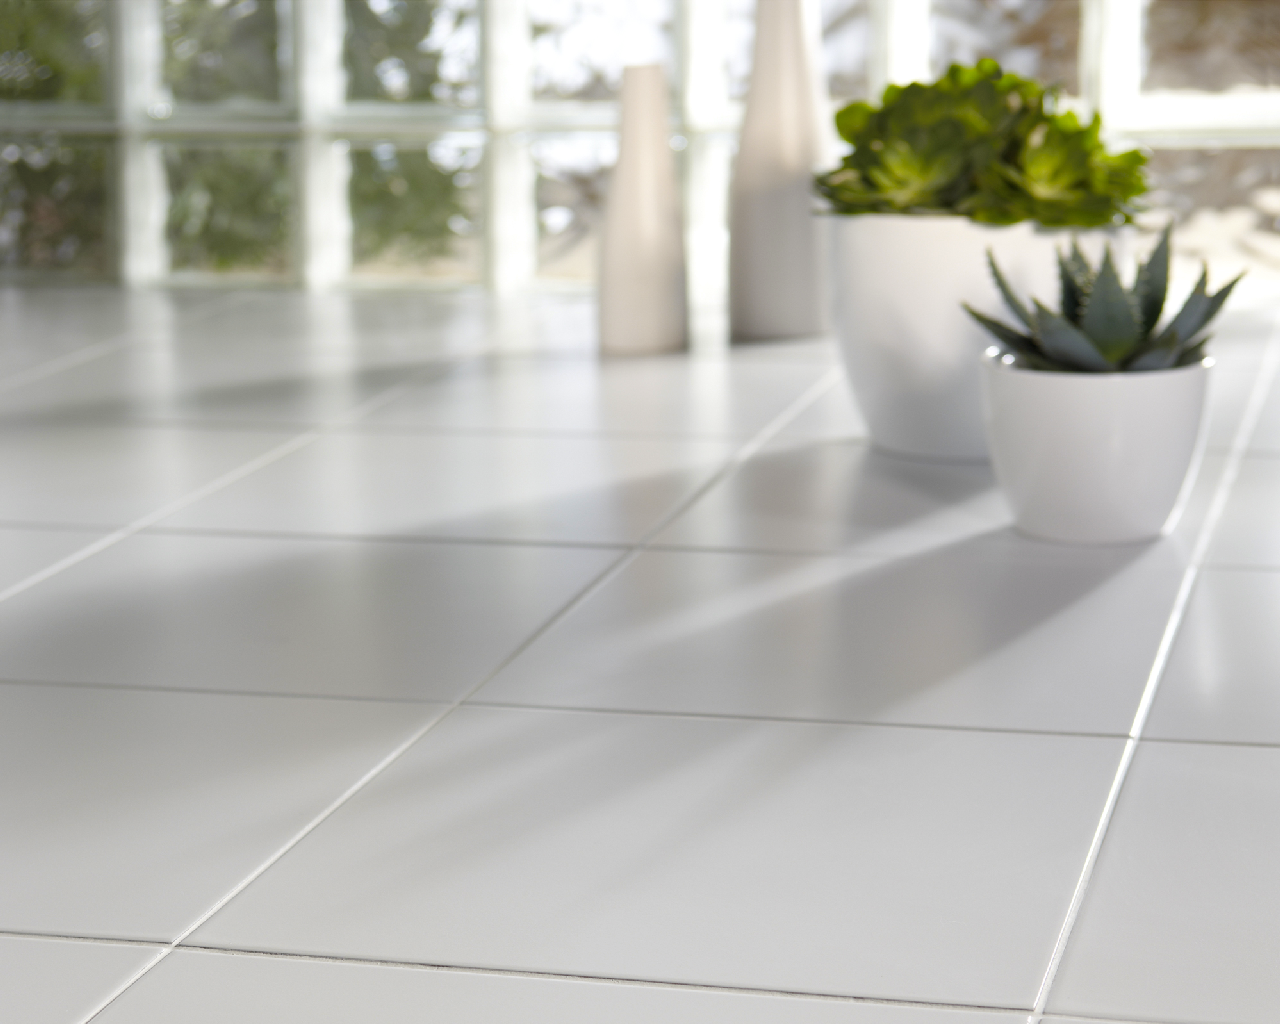 Floor-Tile-Unique-Tile-Flooring-Tile-Floor-Clean-Tile-Floors